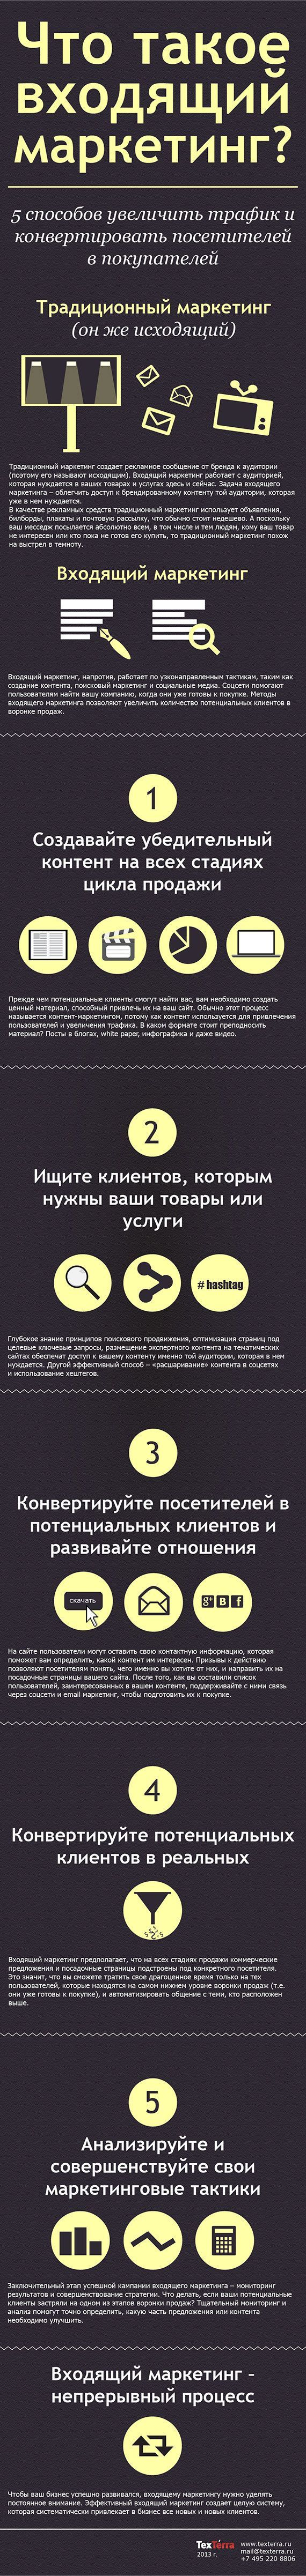 14-primerov-infografiki-po-kontent-marketingu_4